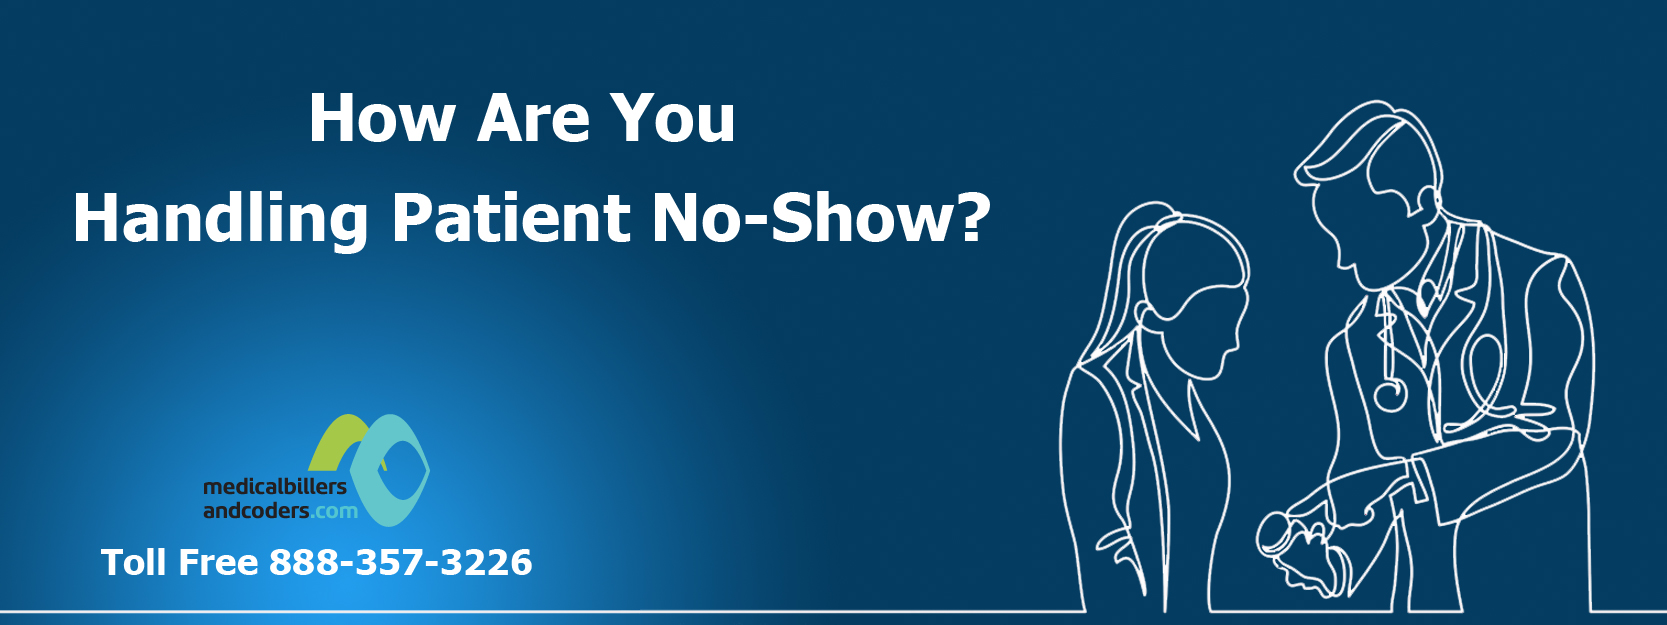 How Are You Handling Patient No-Show?